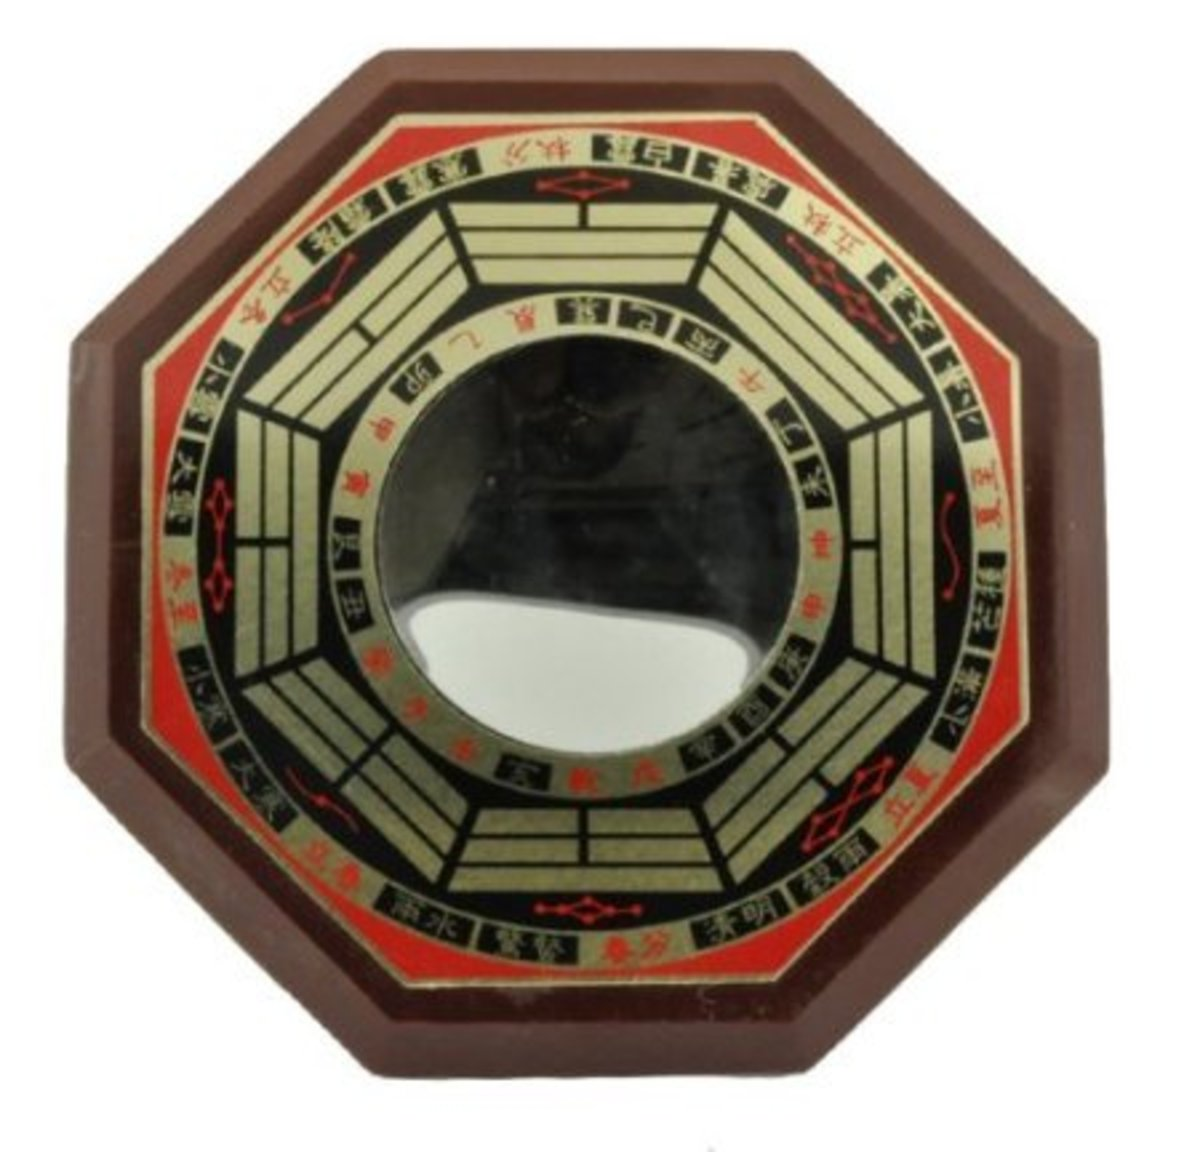 This type of mirror can be placed in various areas of the home to create a great flow of positive feng shui energy